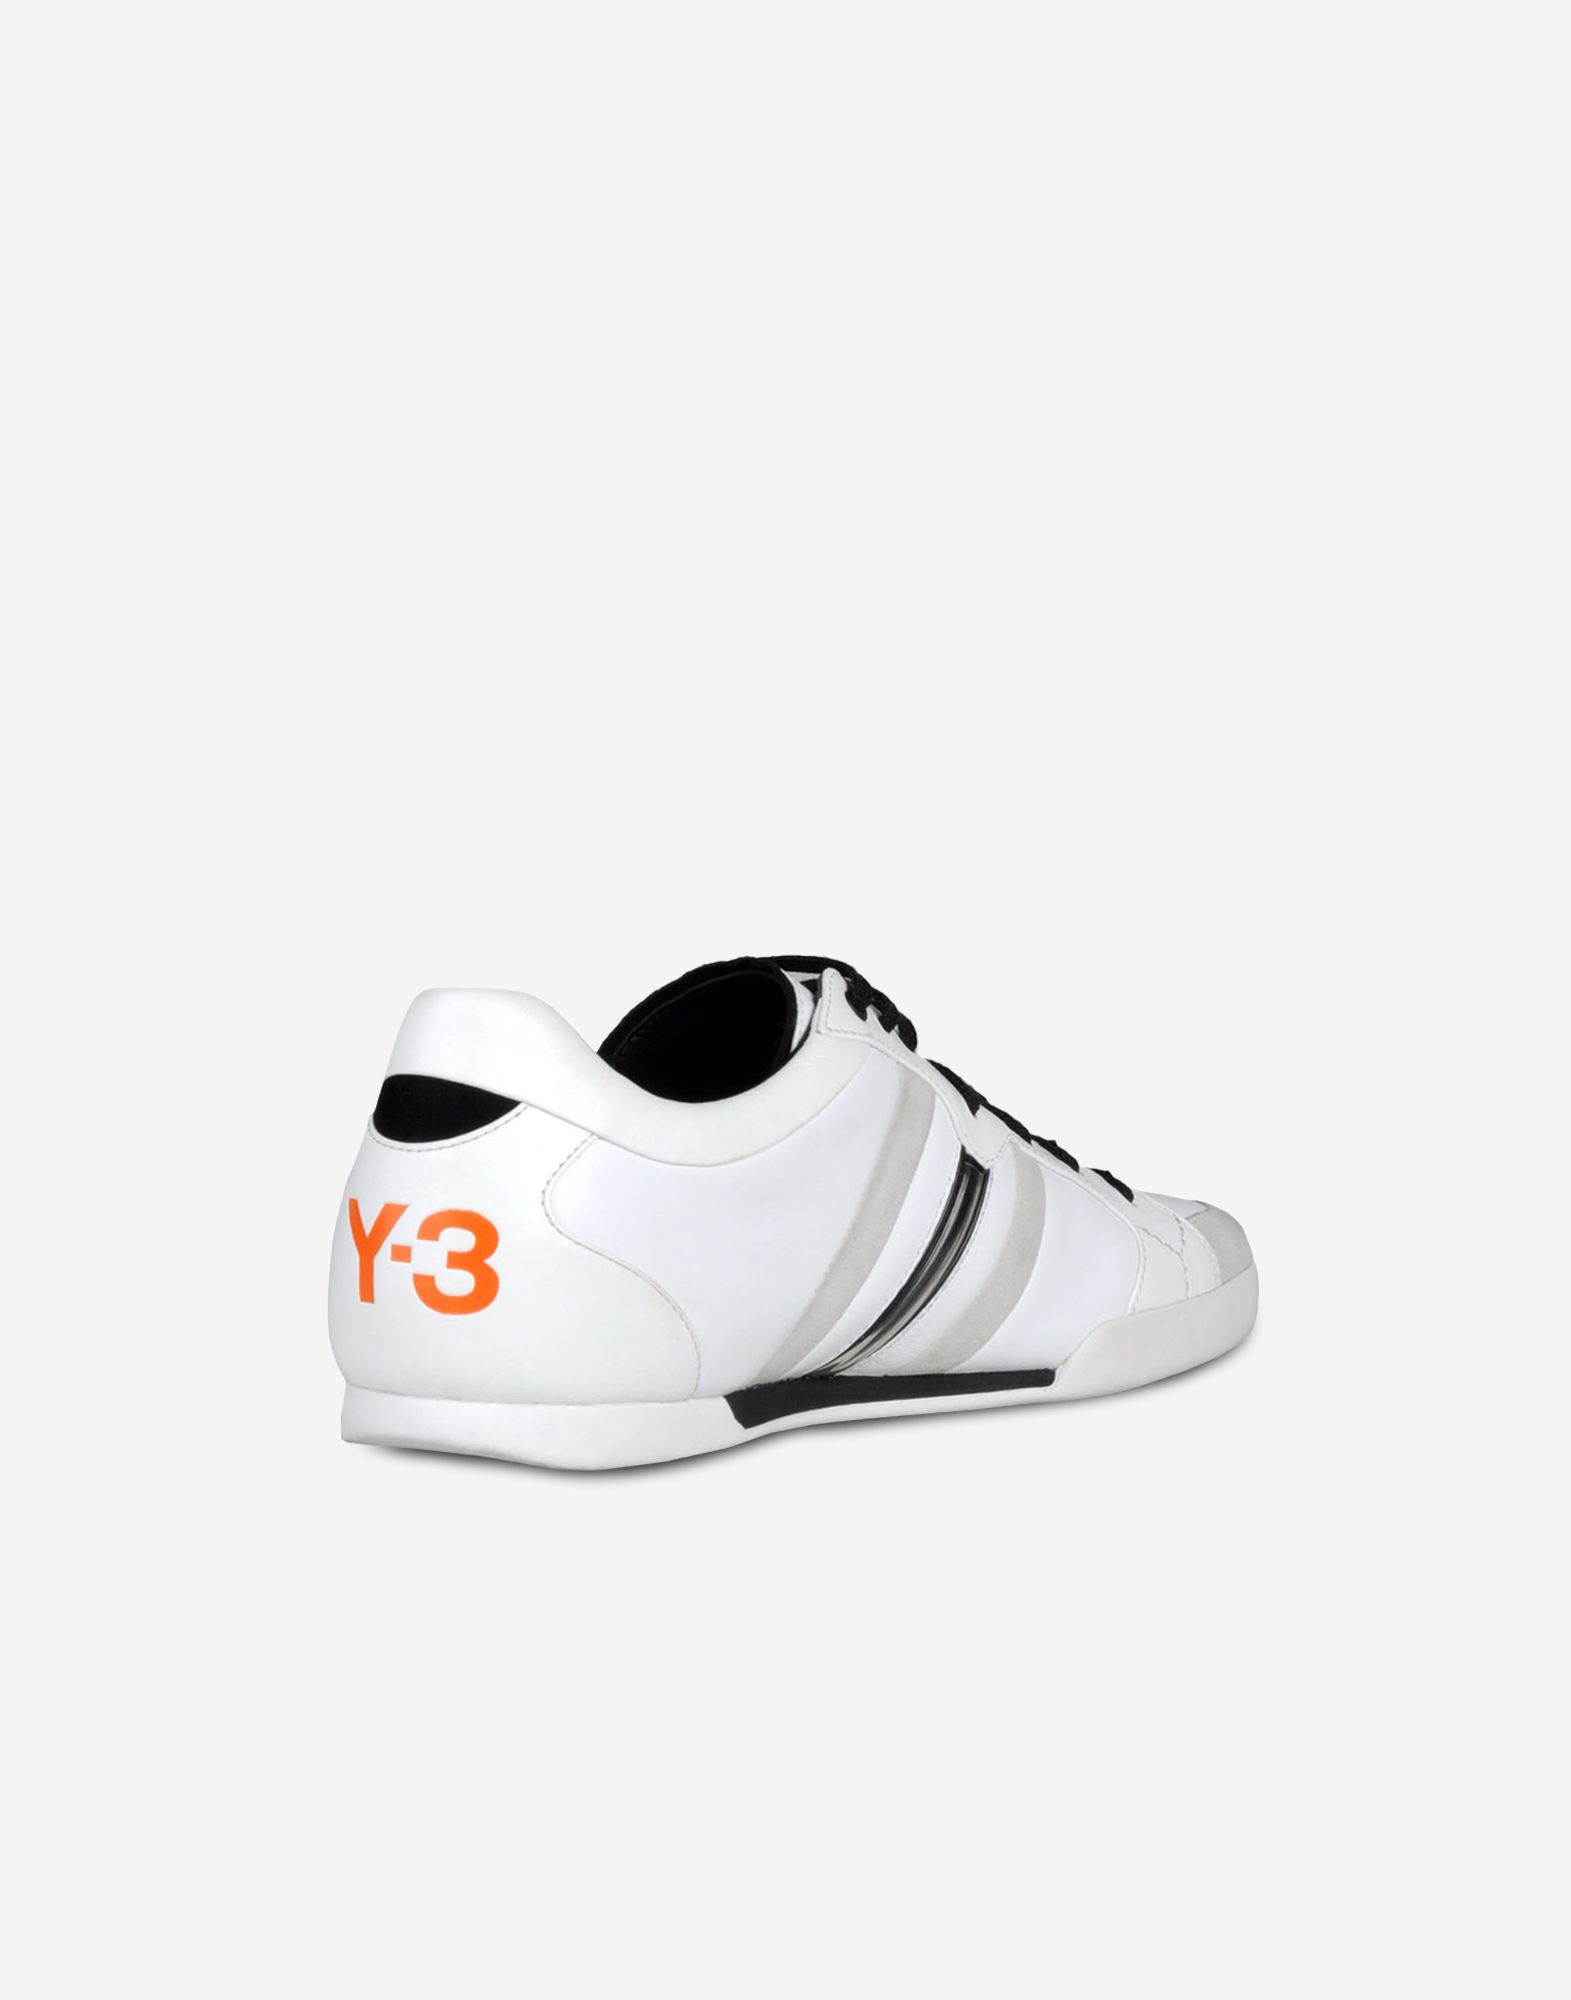 785cd23b1 ... Y-3 Y-3 Sala Classic Sneakers Man d ...